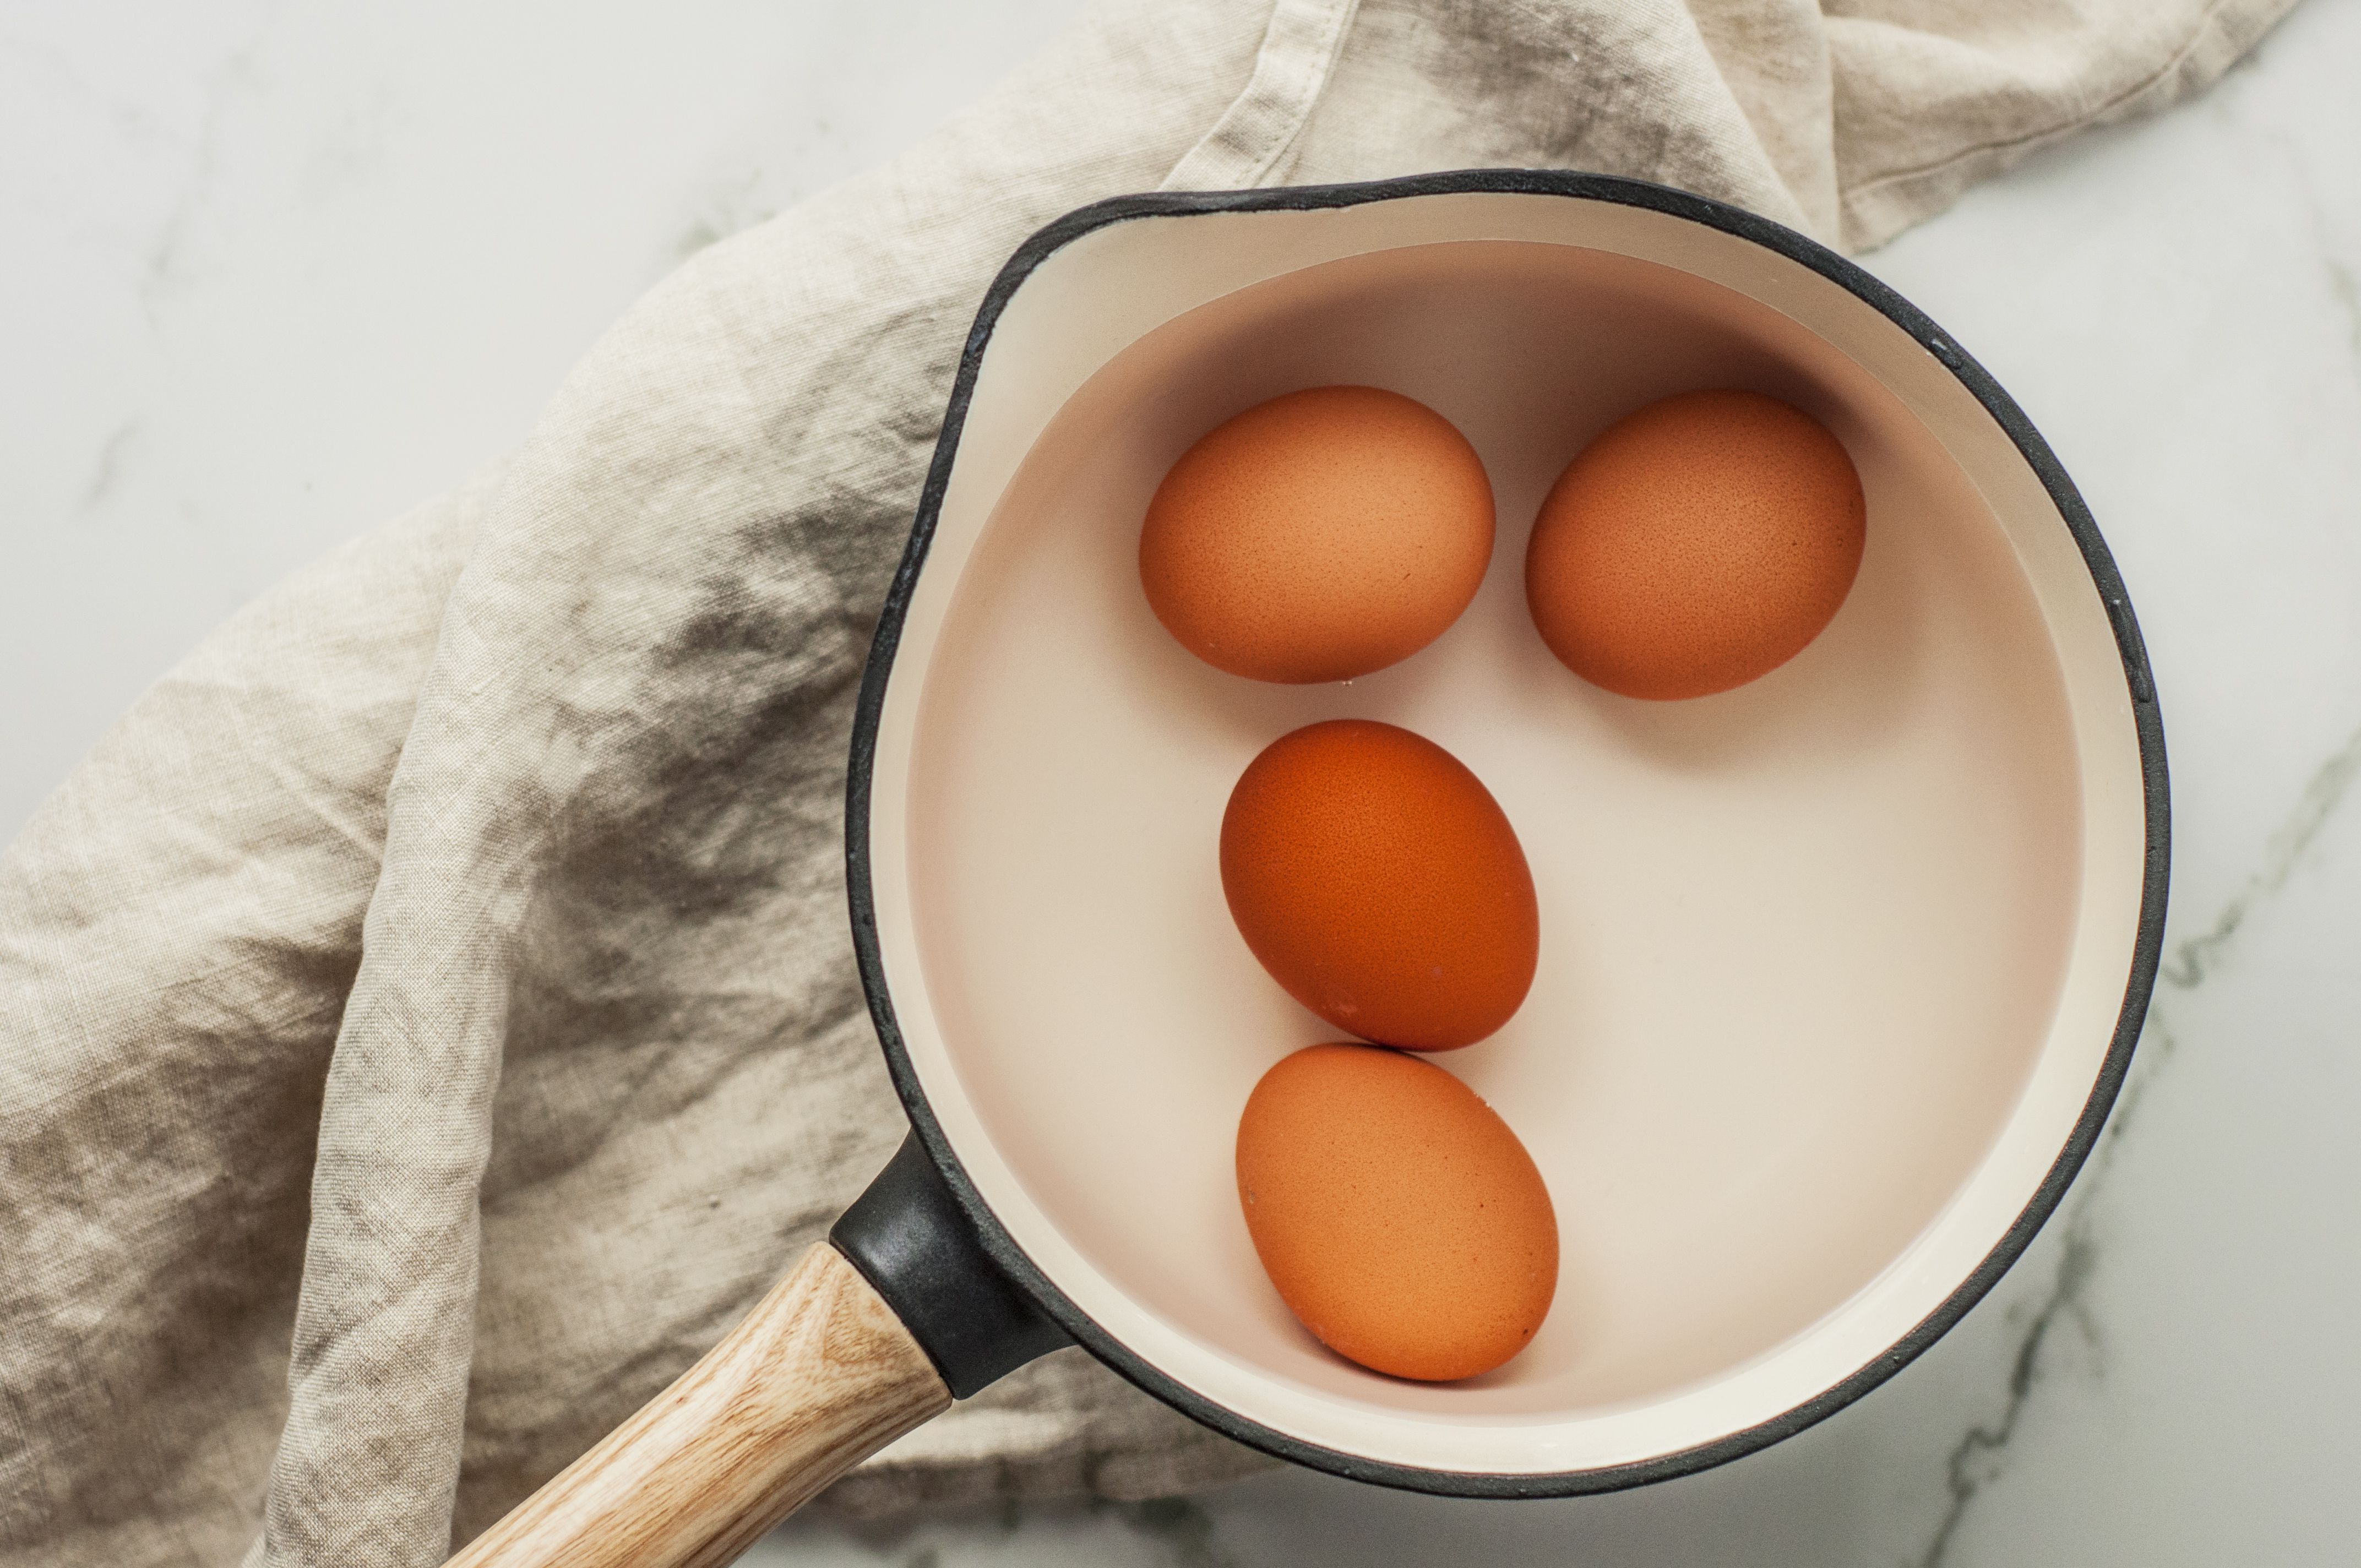 Hard-boiled eggs placed in a pot of water